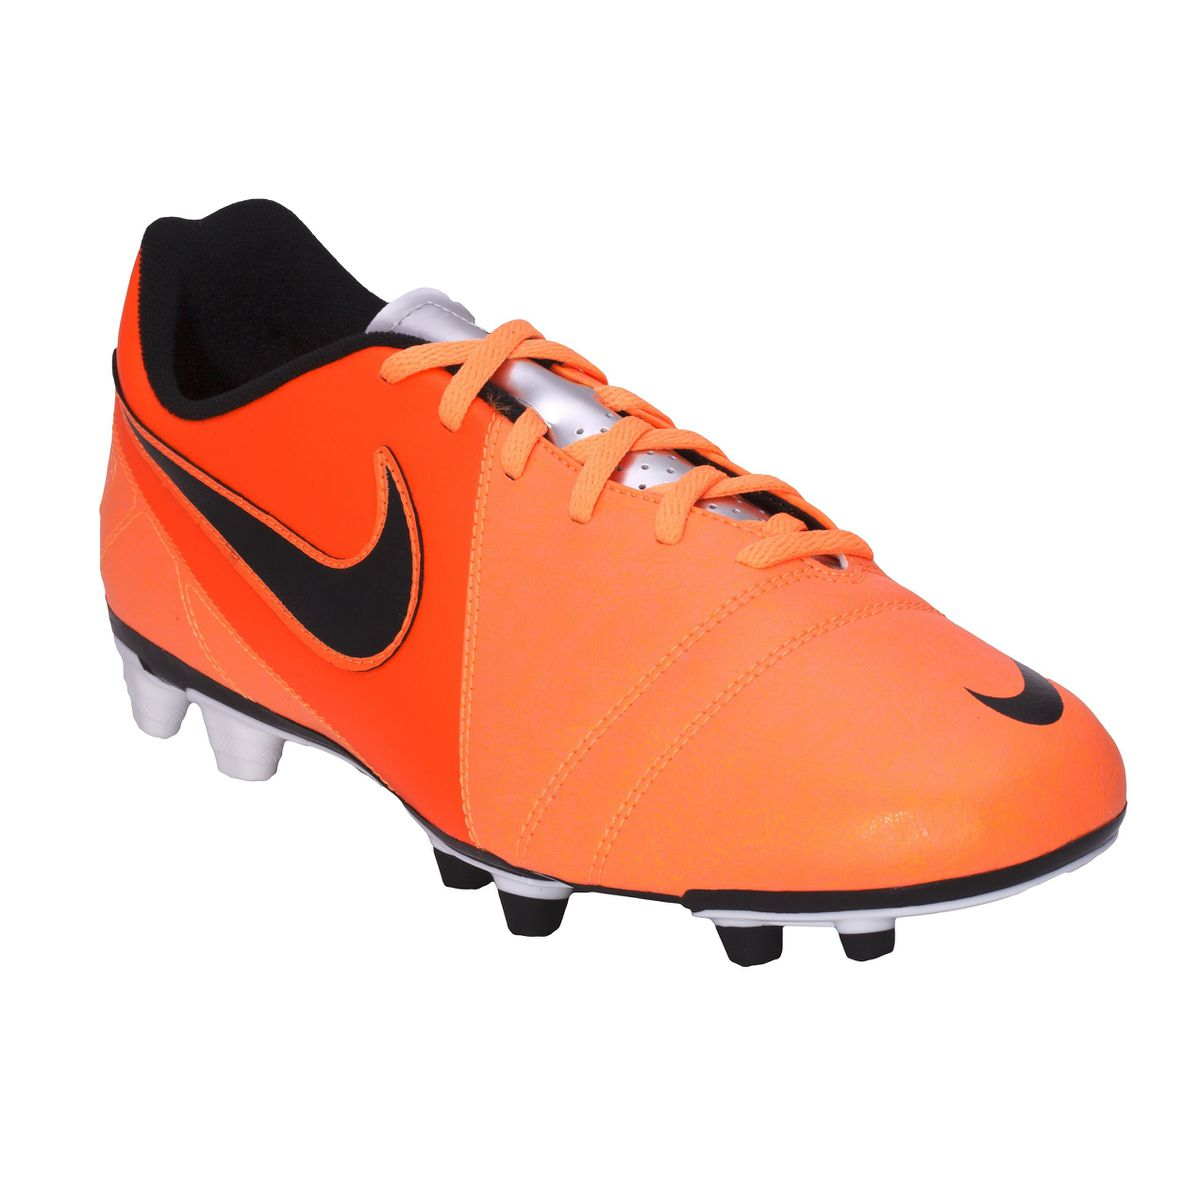 nike ctr360 enganche iii fg on sale   OFF56% Discounts 86d5191734413